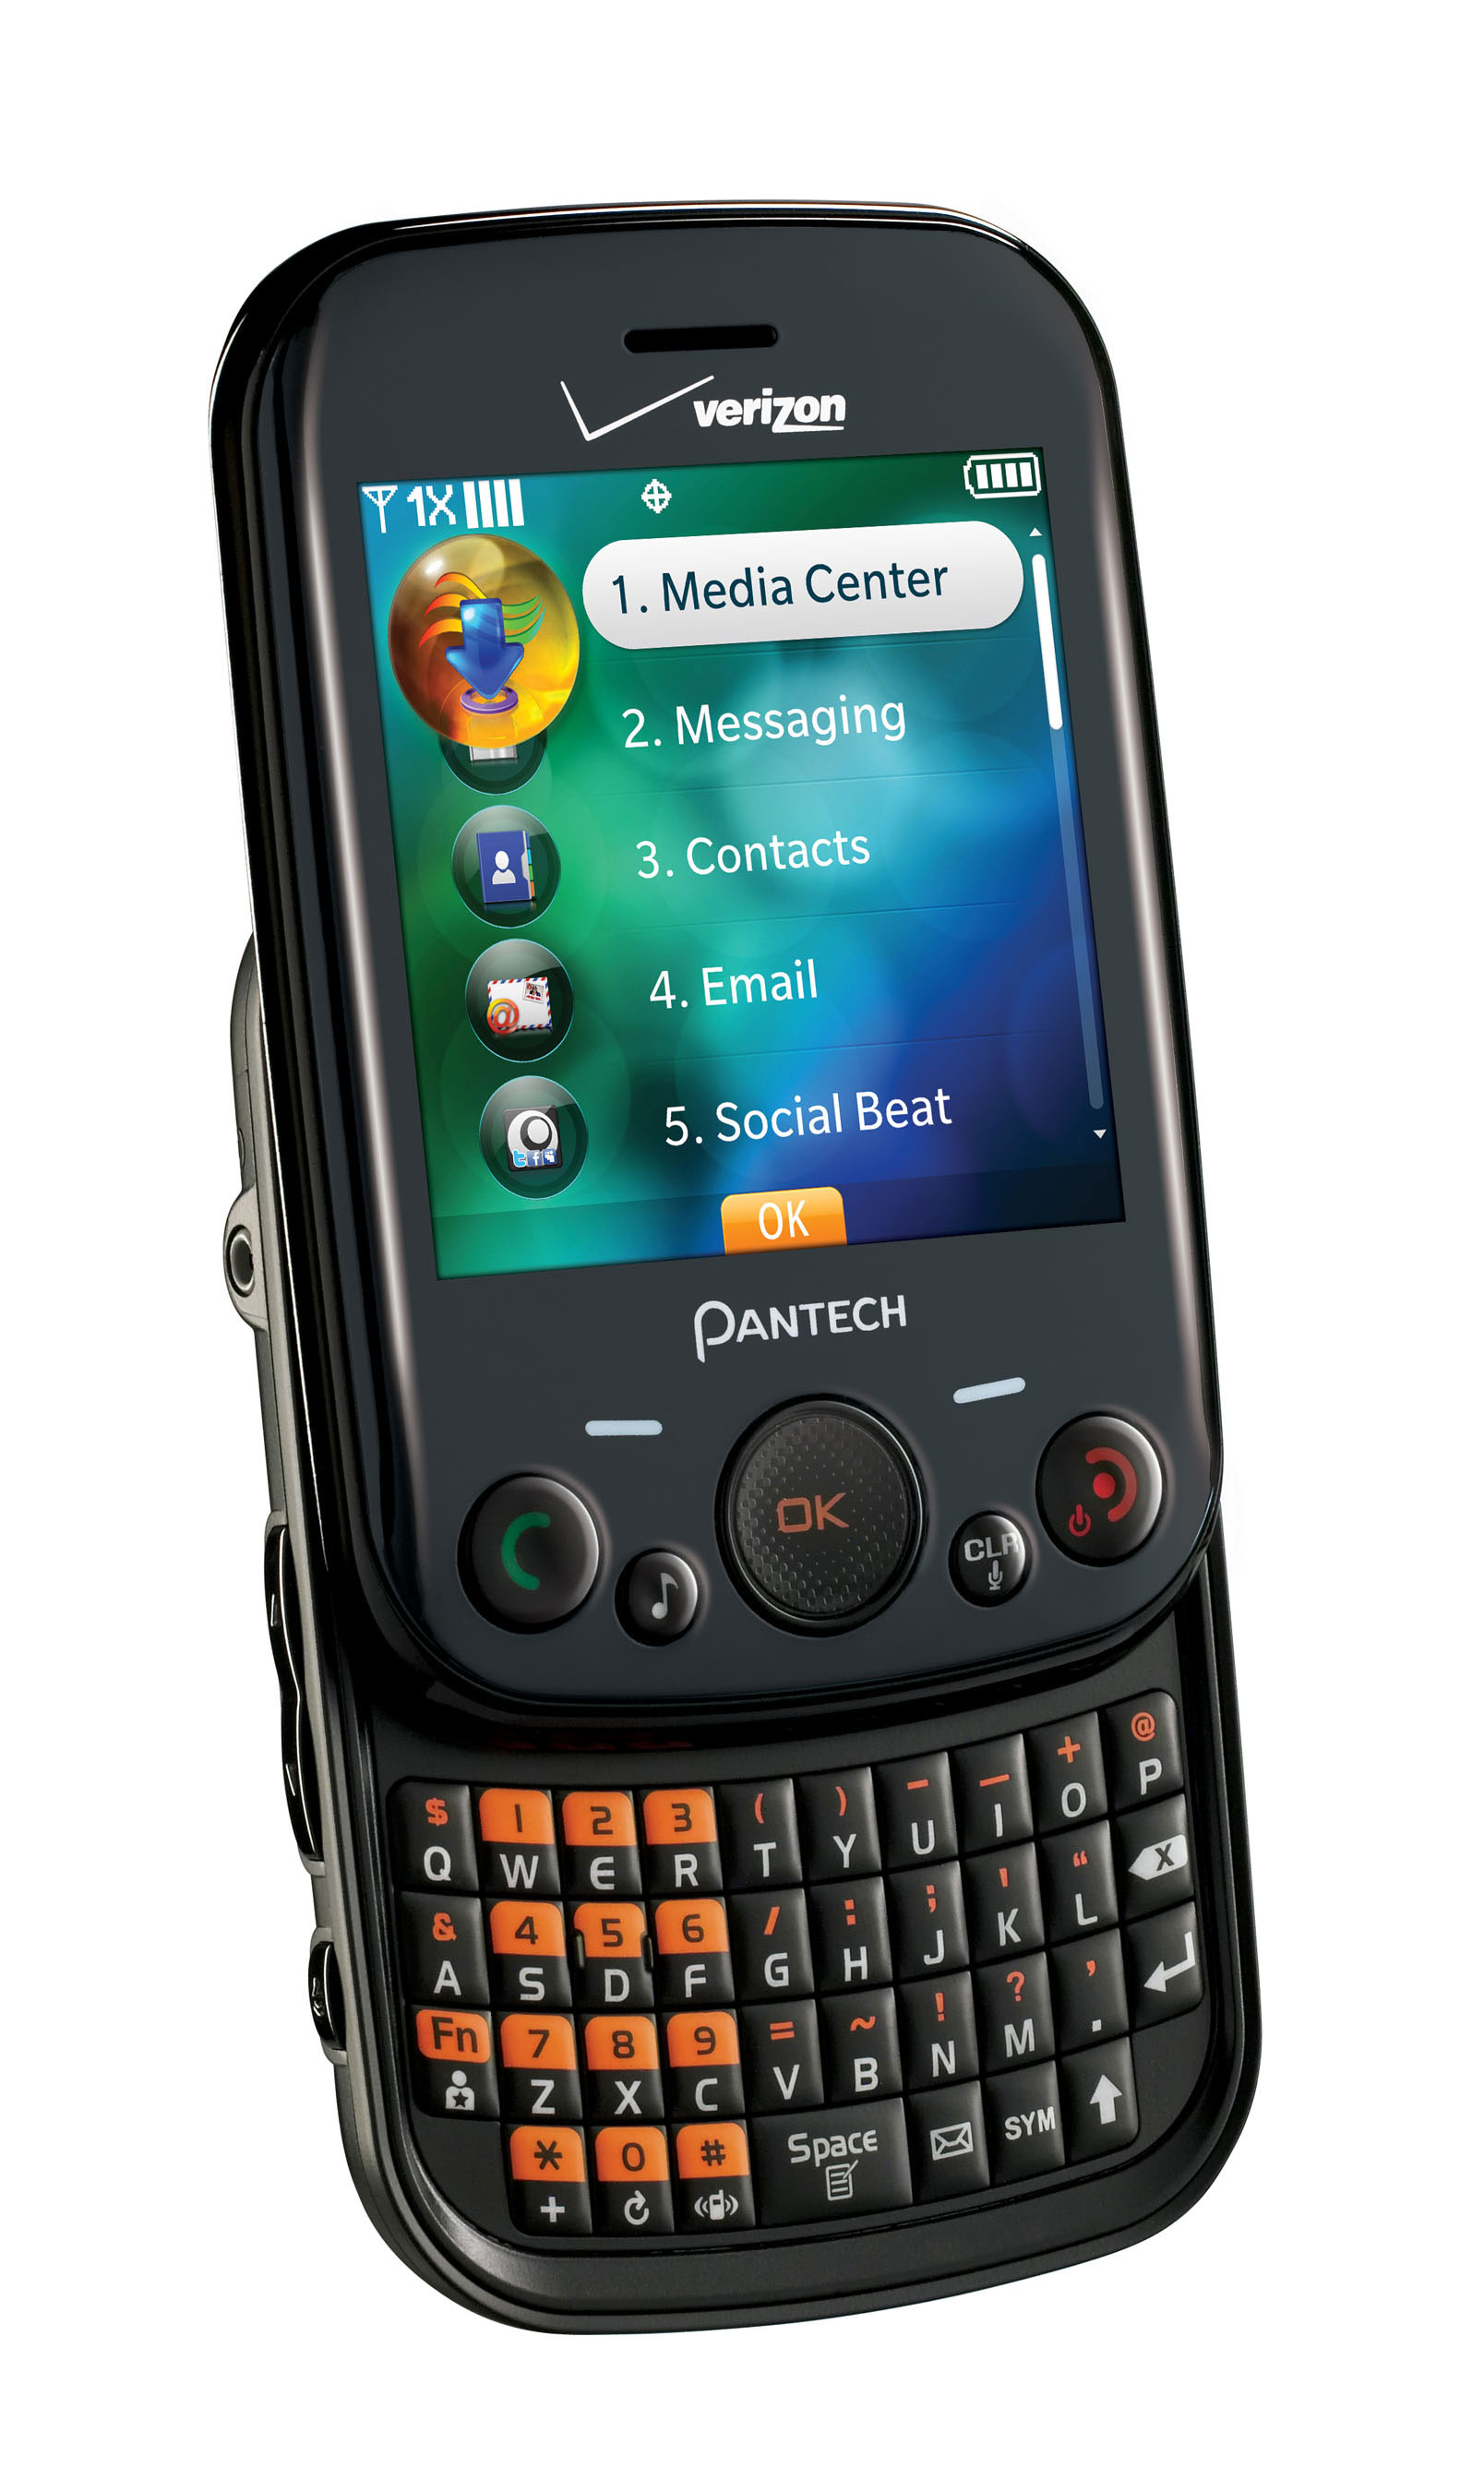 Pantech Jest From Verizon Offers Cheap Texting in a